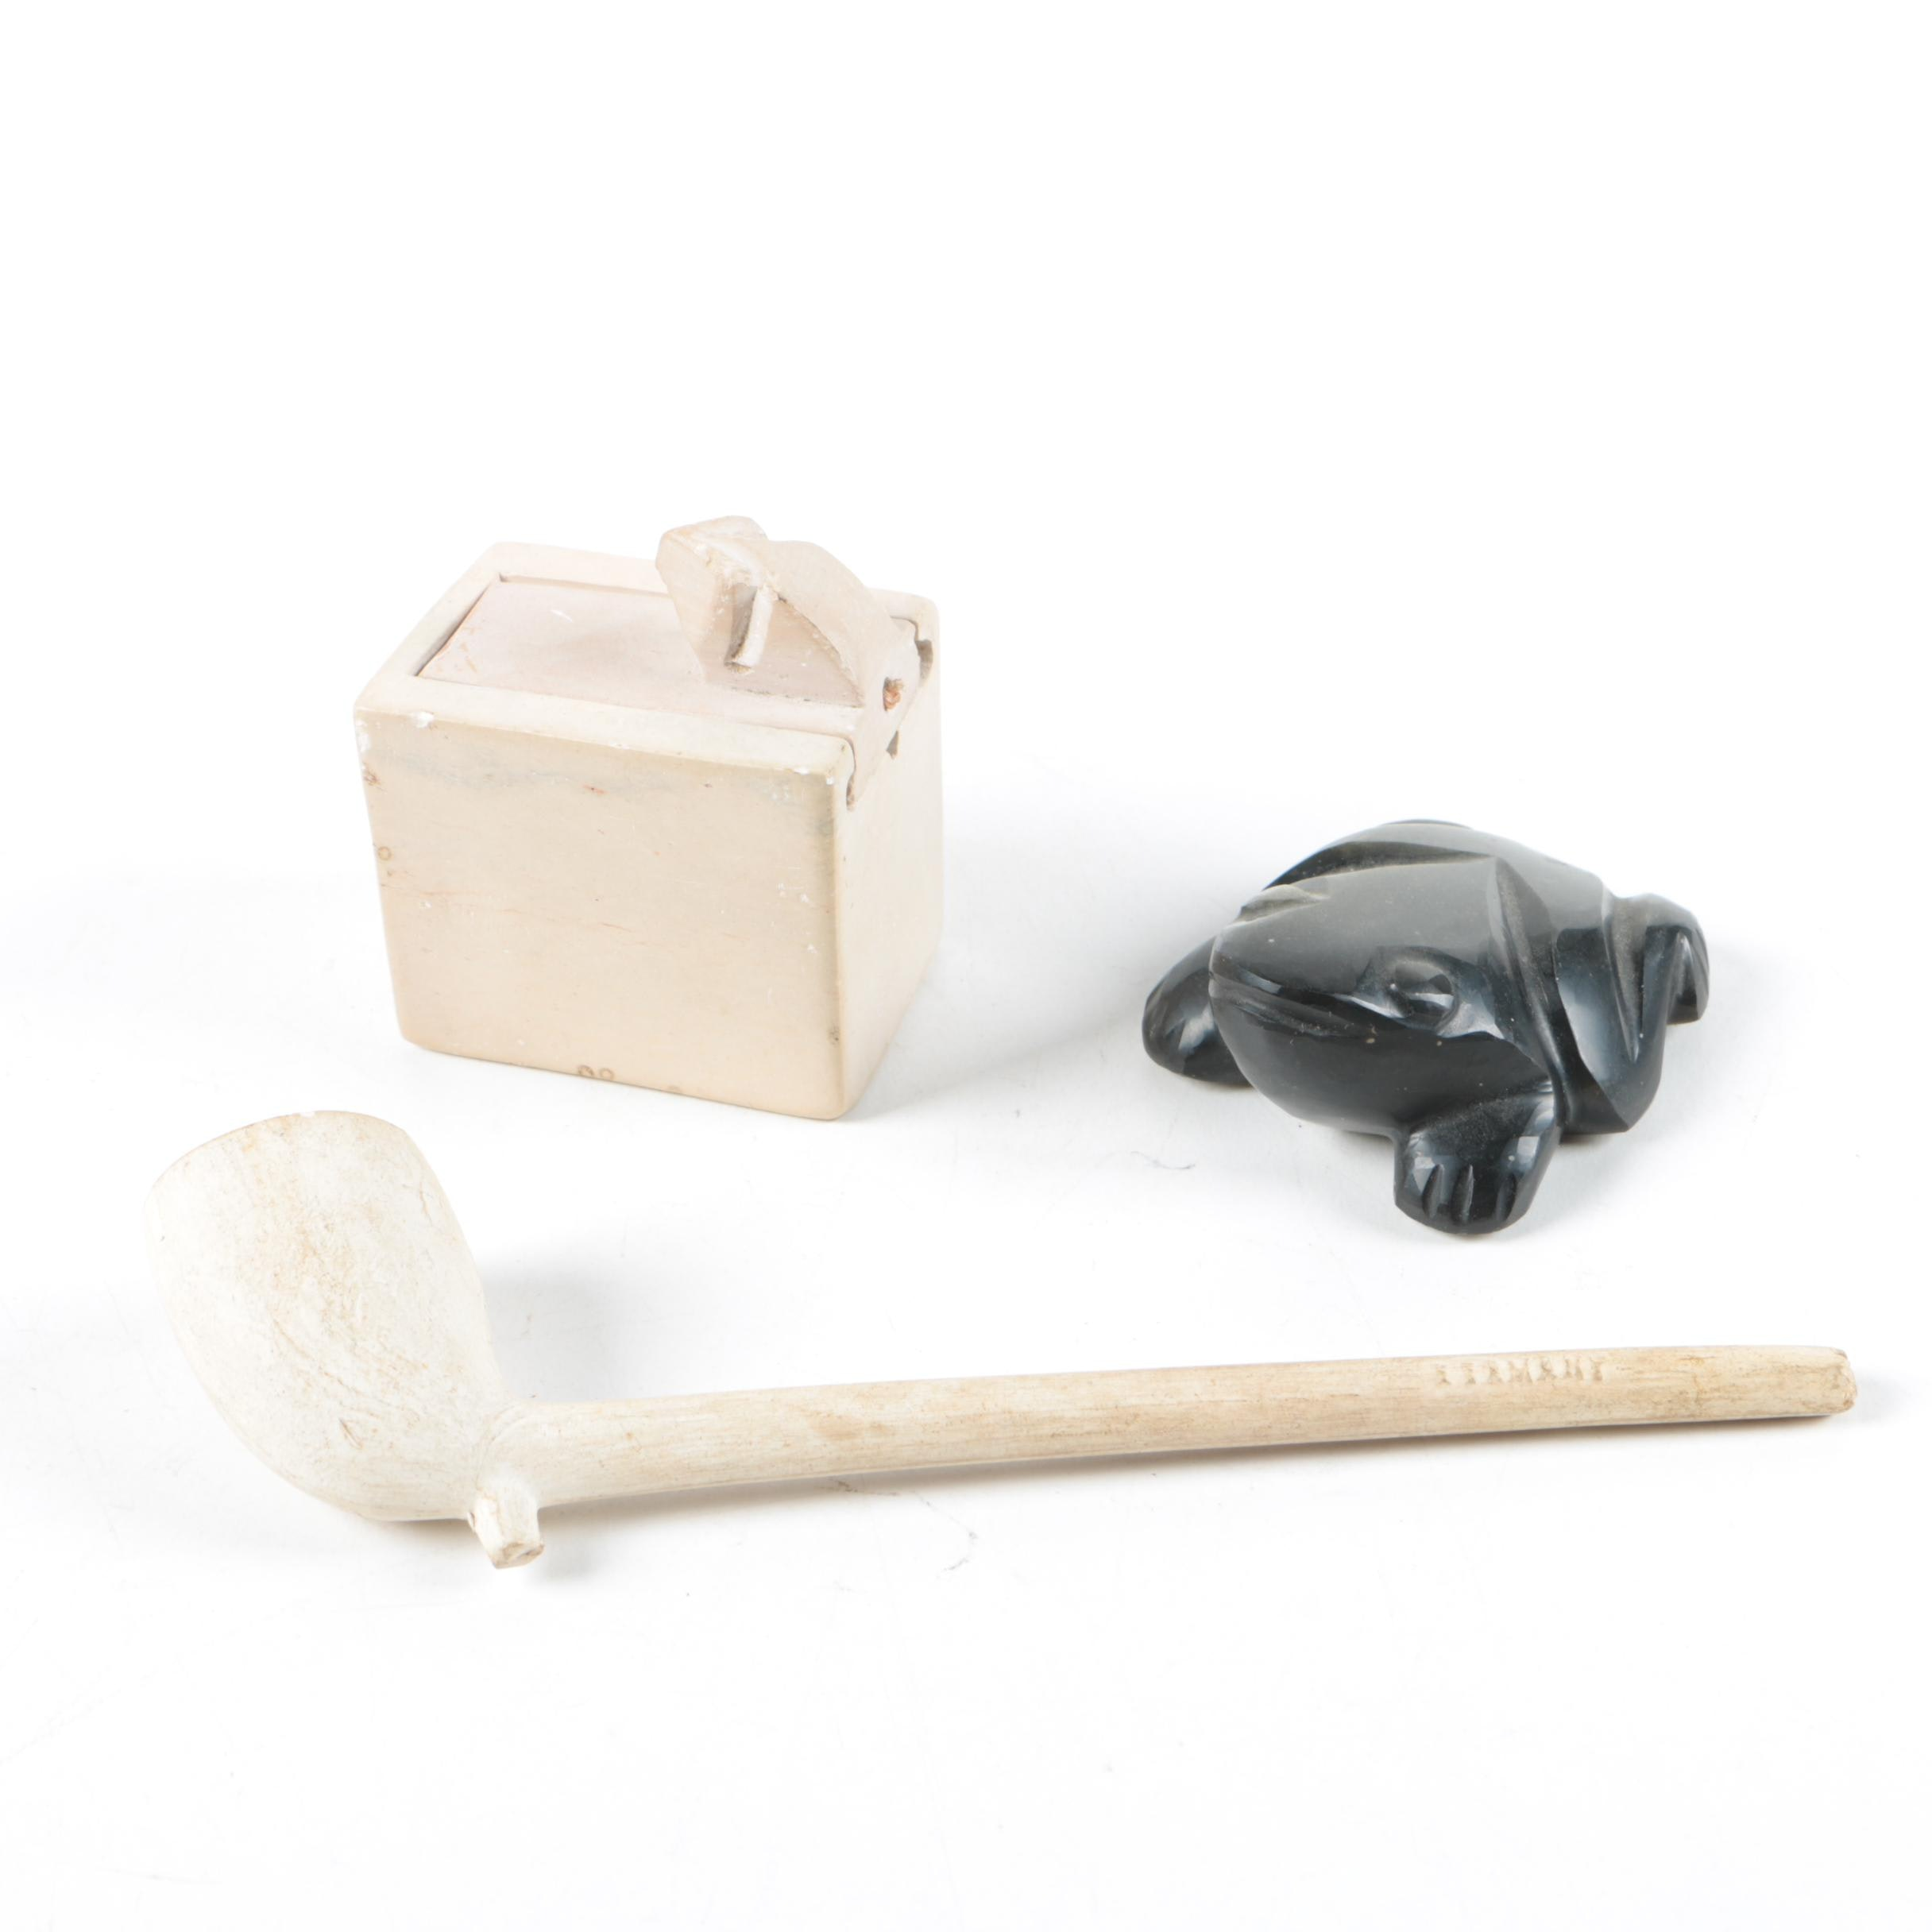 Vintage Clay Pipe, Soapstone Box, and Agate Figurine